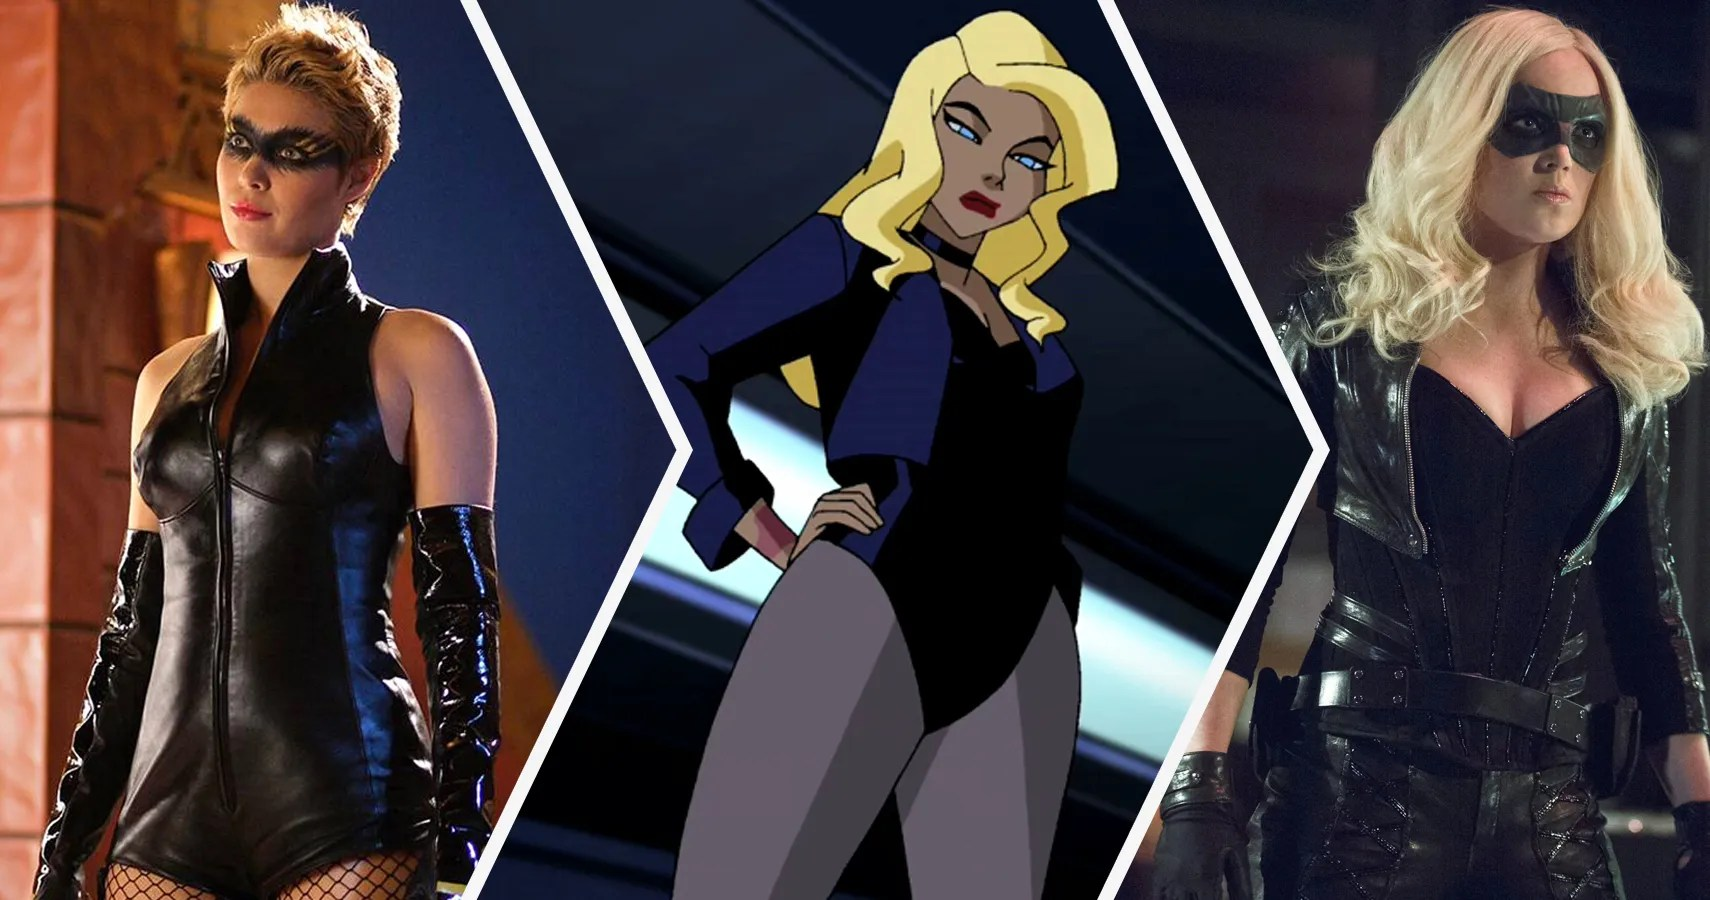 Anime Girl Corset Wallpaper Black Canary Costumes From Comics And Tv Ranked Cbr